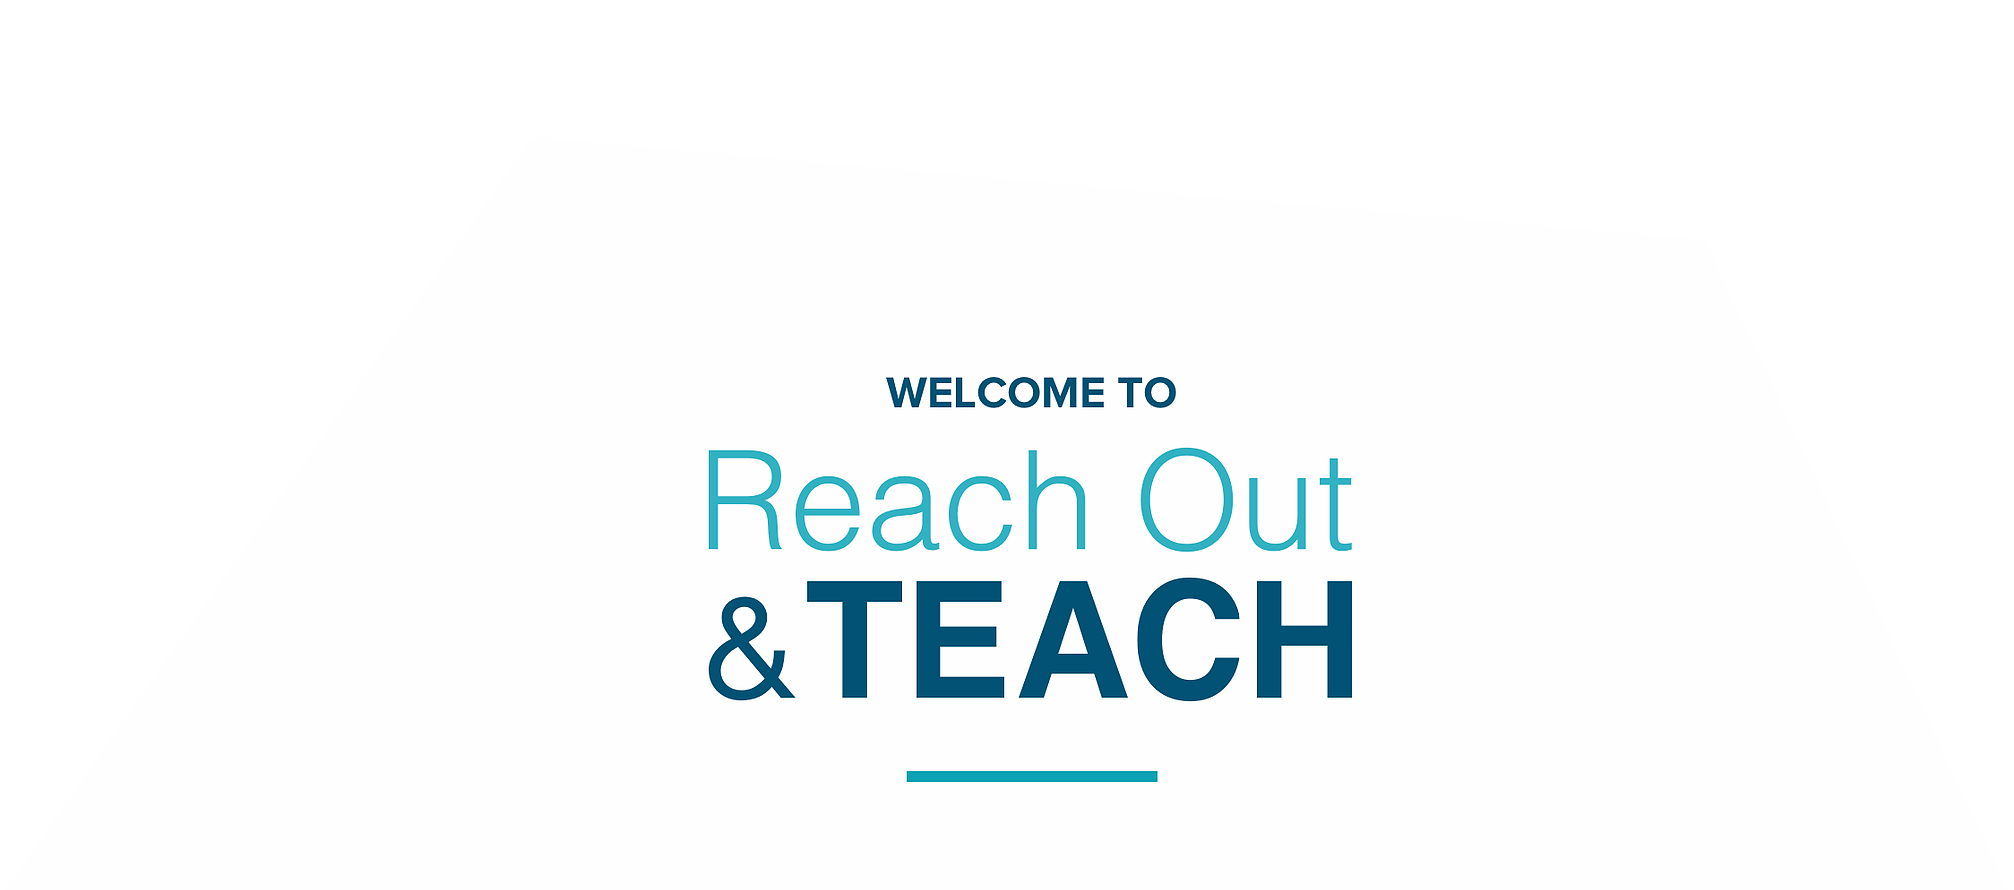 Welcome to Reach Out & Teach